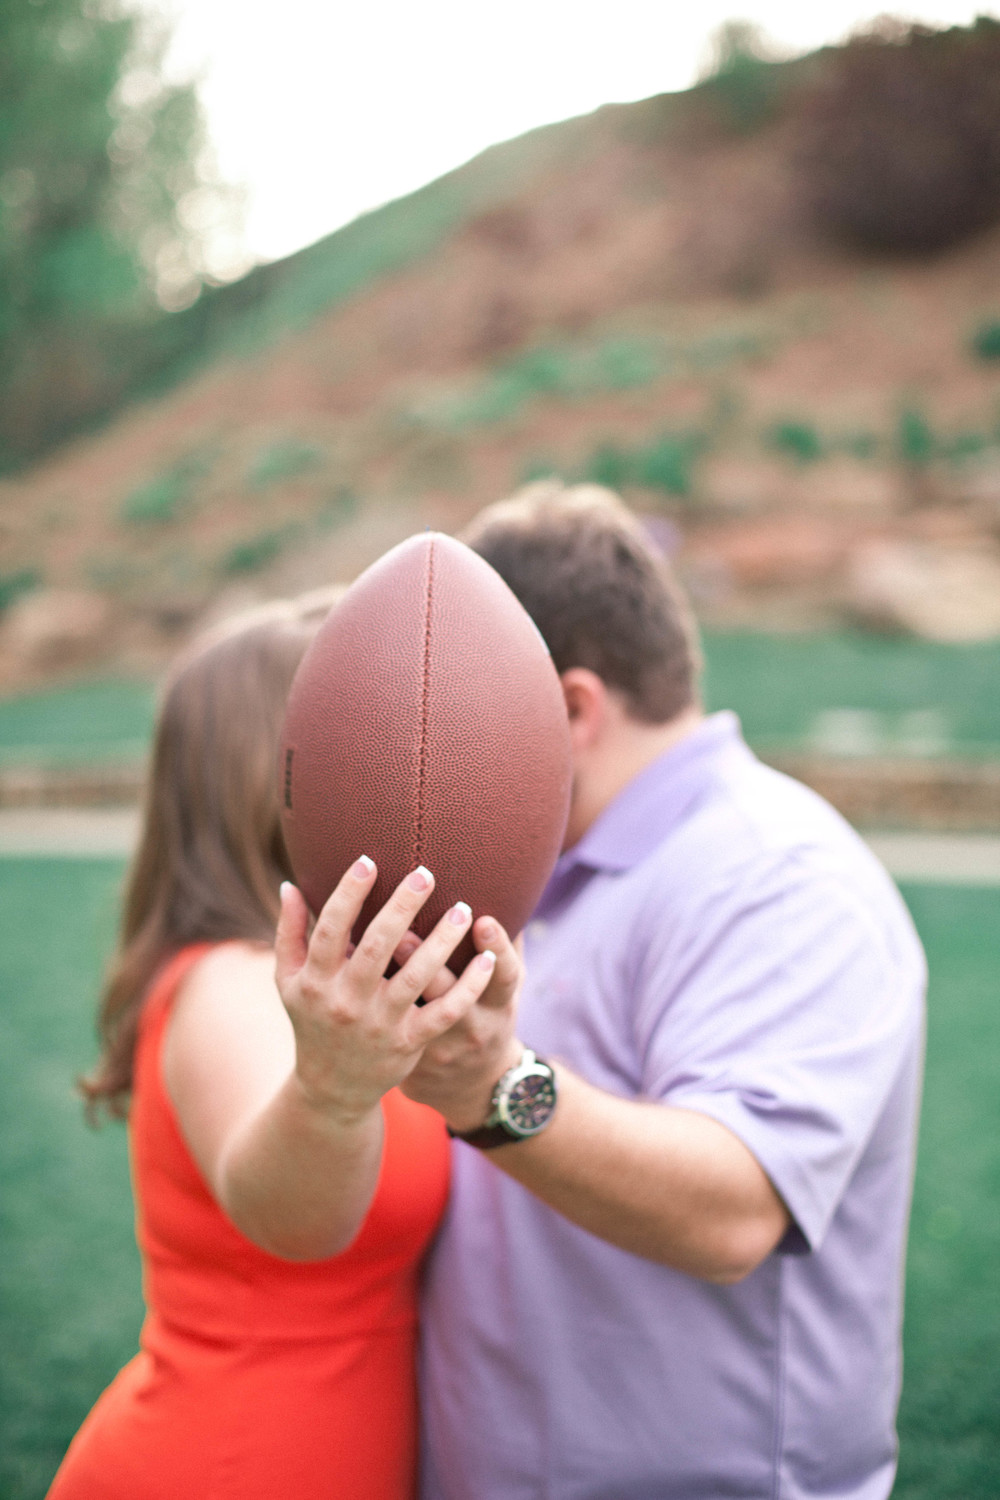 zach_gabbie_engagement_poured_out_photography-38.jpg